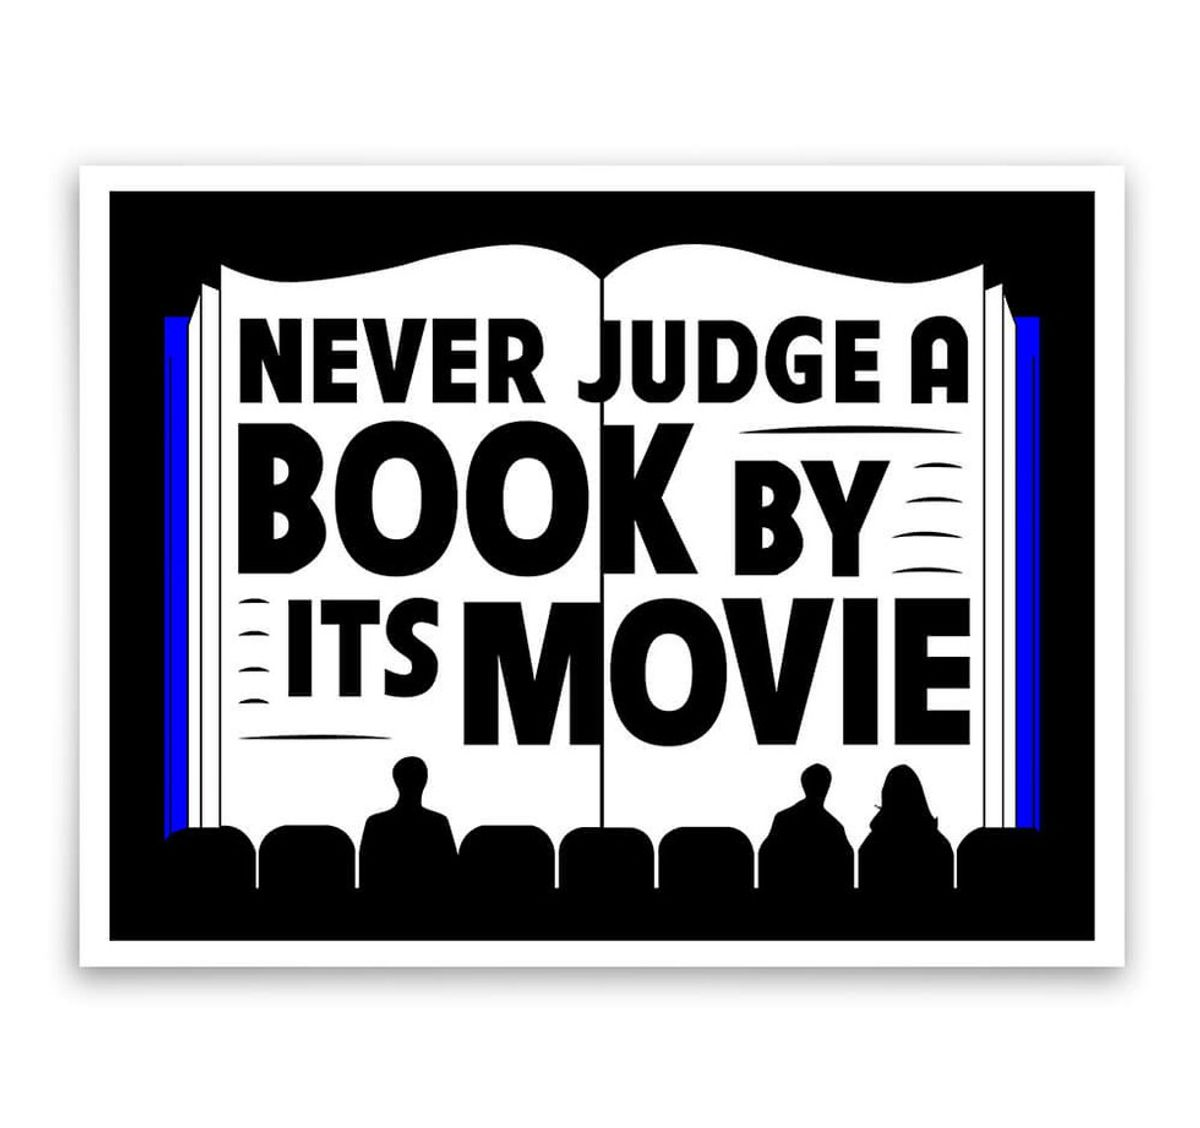 10 Reasons Why Books Are Better Than Their Movie Adaptations